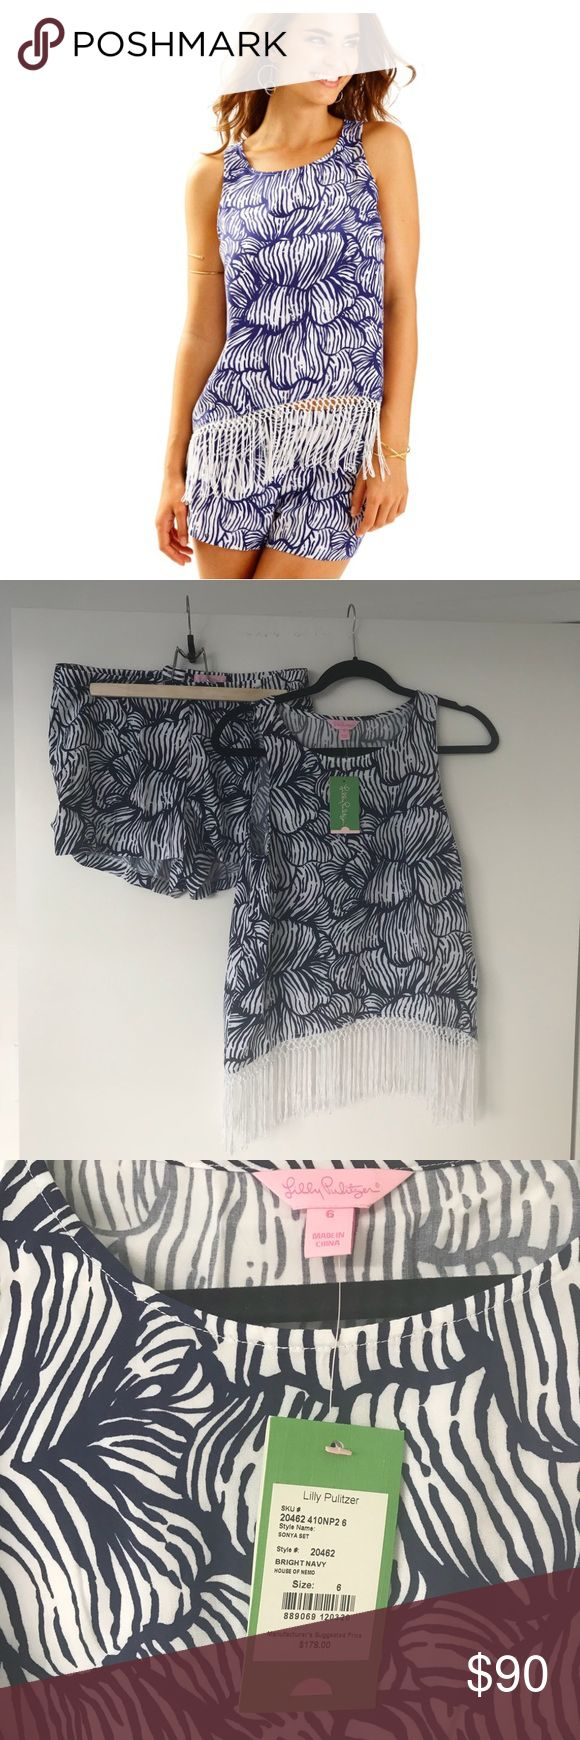 NWT Lilly Pulitzer Sonya Fringe Tank & Shorts Set Brand new Lilly Pulitzer Sonya Fringe Tank Top & Shorts Set, tags still on it. Navy and white print, a little more subtle than other Lilly prints. Absolutely love this set! Size 6 and runs true to size! Light weight but still thick enough material that it is not sheer. The braided detailing on the fringe are my favorite part (check out my picture)! Both top and short included, both tags listed as a 6. Lilly Pulitzer Other